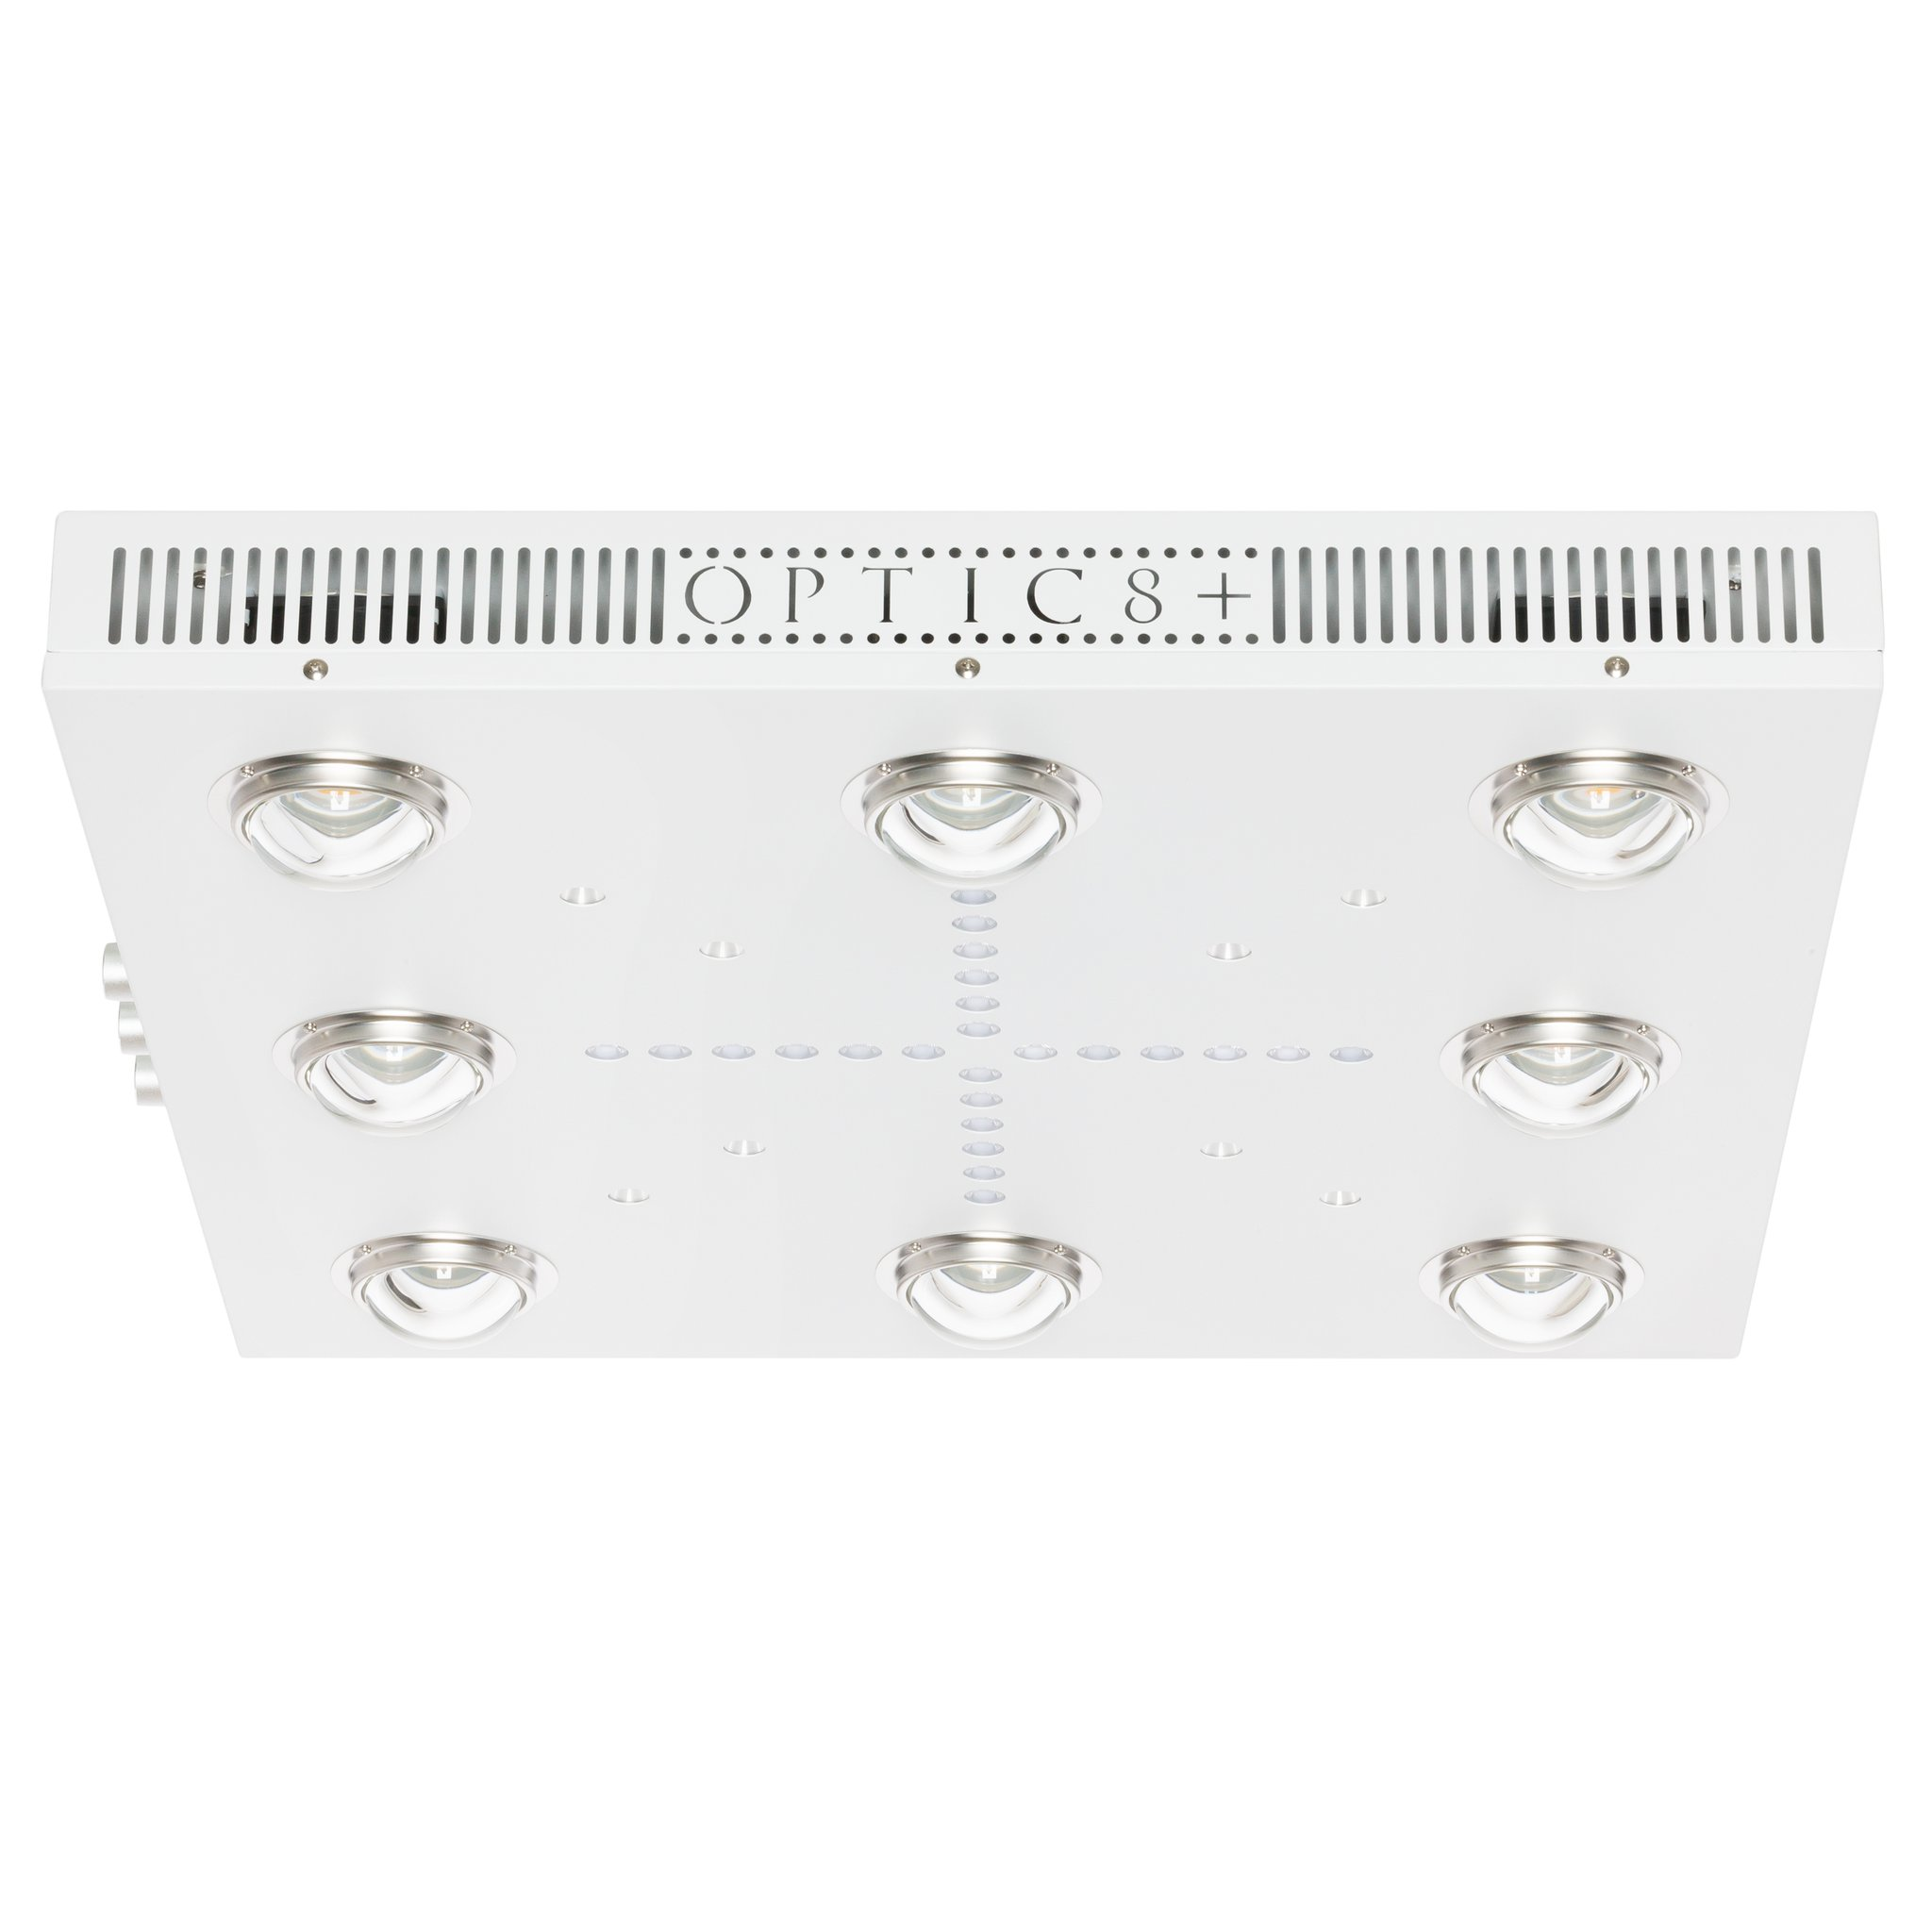 OPTIC LED OPTIC 8+ Dimmable COB LED Grow Light 500W (UV/IR) 3500k COBs - 90 Degree Lenses (4x4)